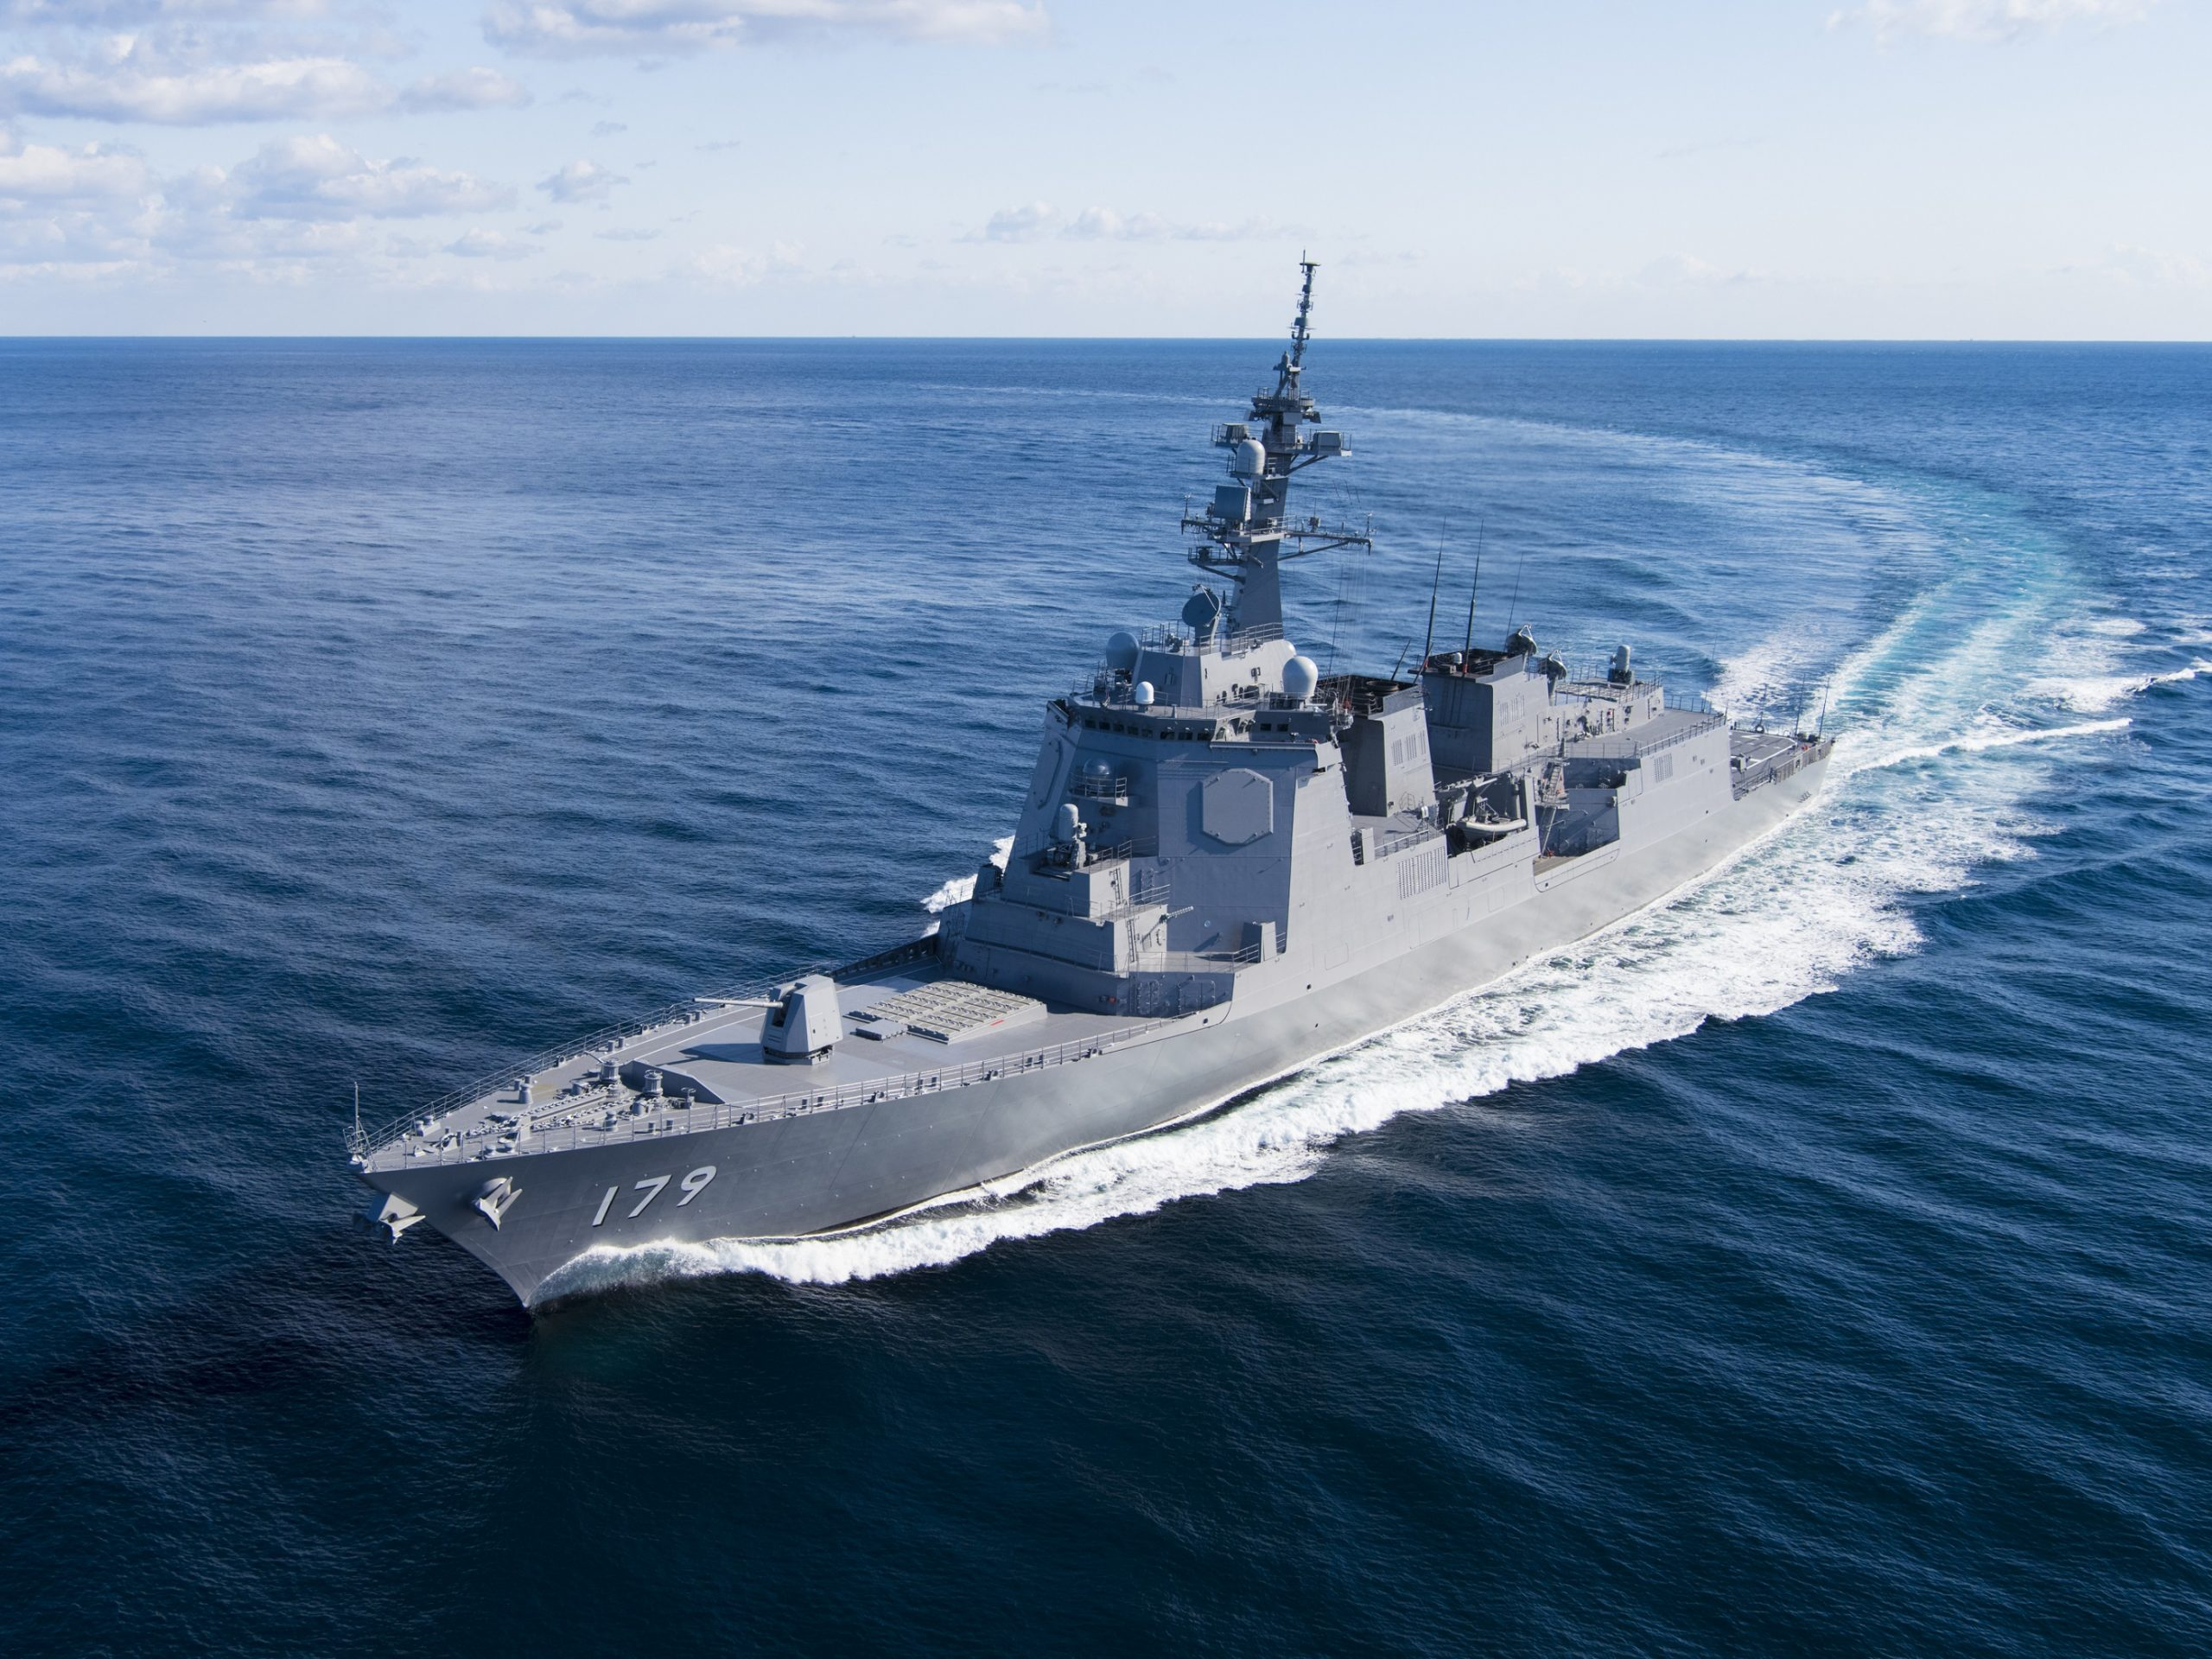 Japan Commences Sea Trials Of Latest Aegis Missile Destroyer Asian Military Review